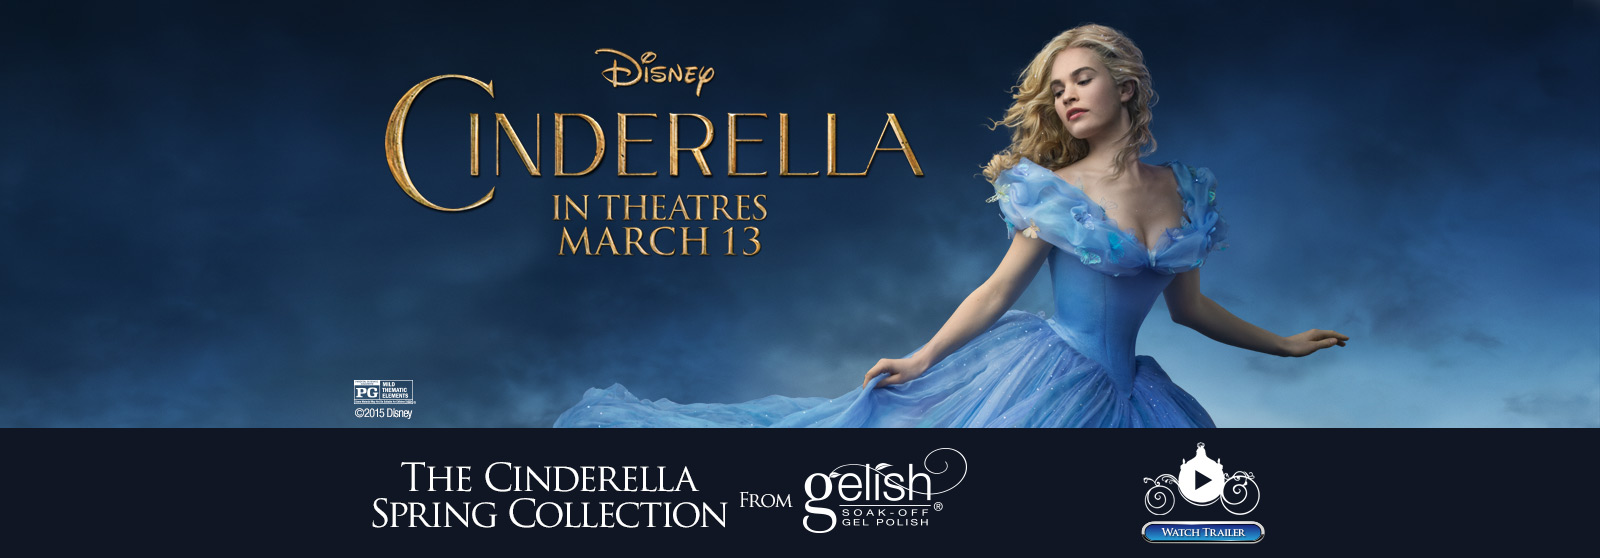 The Cinderella Spring Collection from Gelish